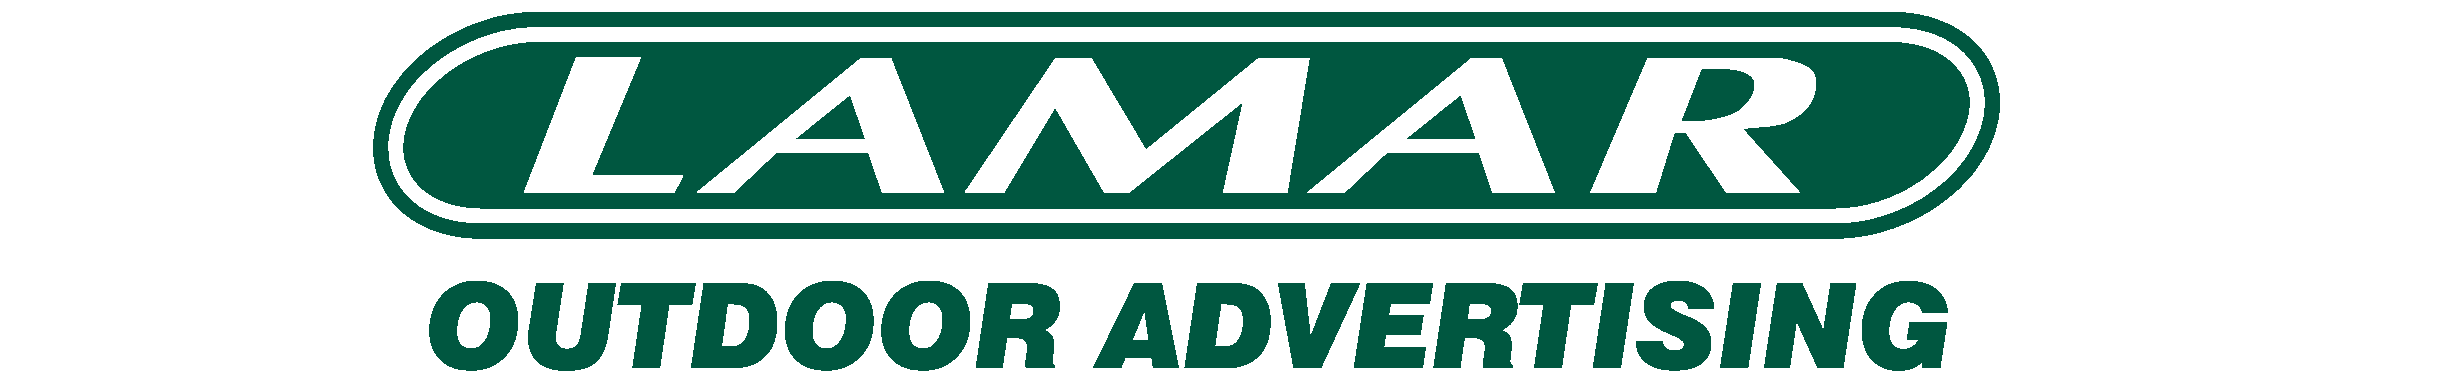 Lamar Outdoor Advertising logo.png